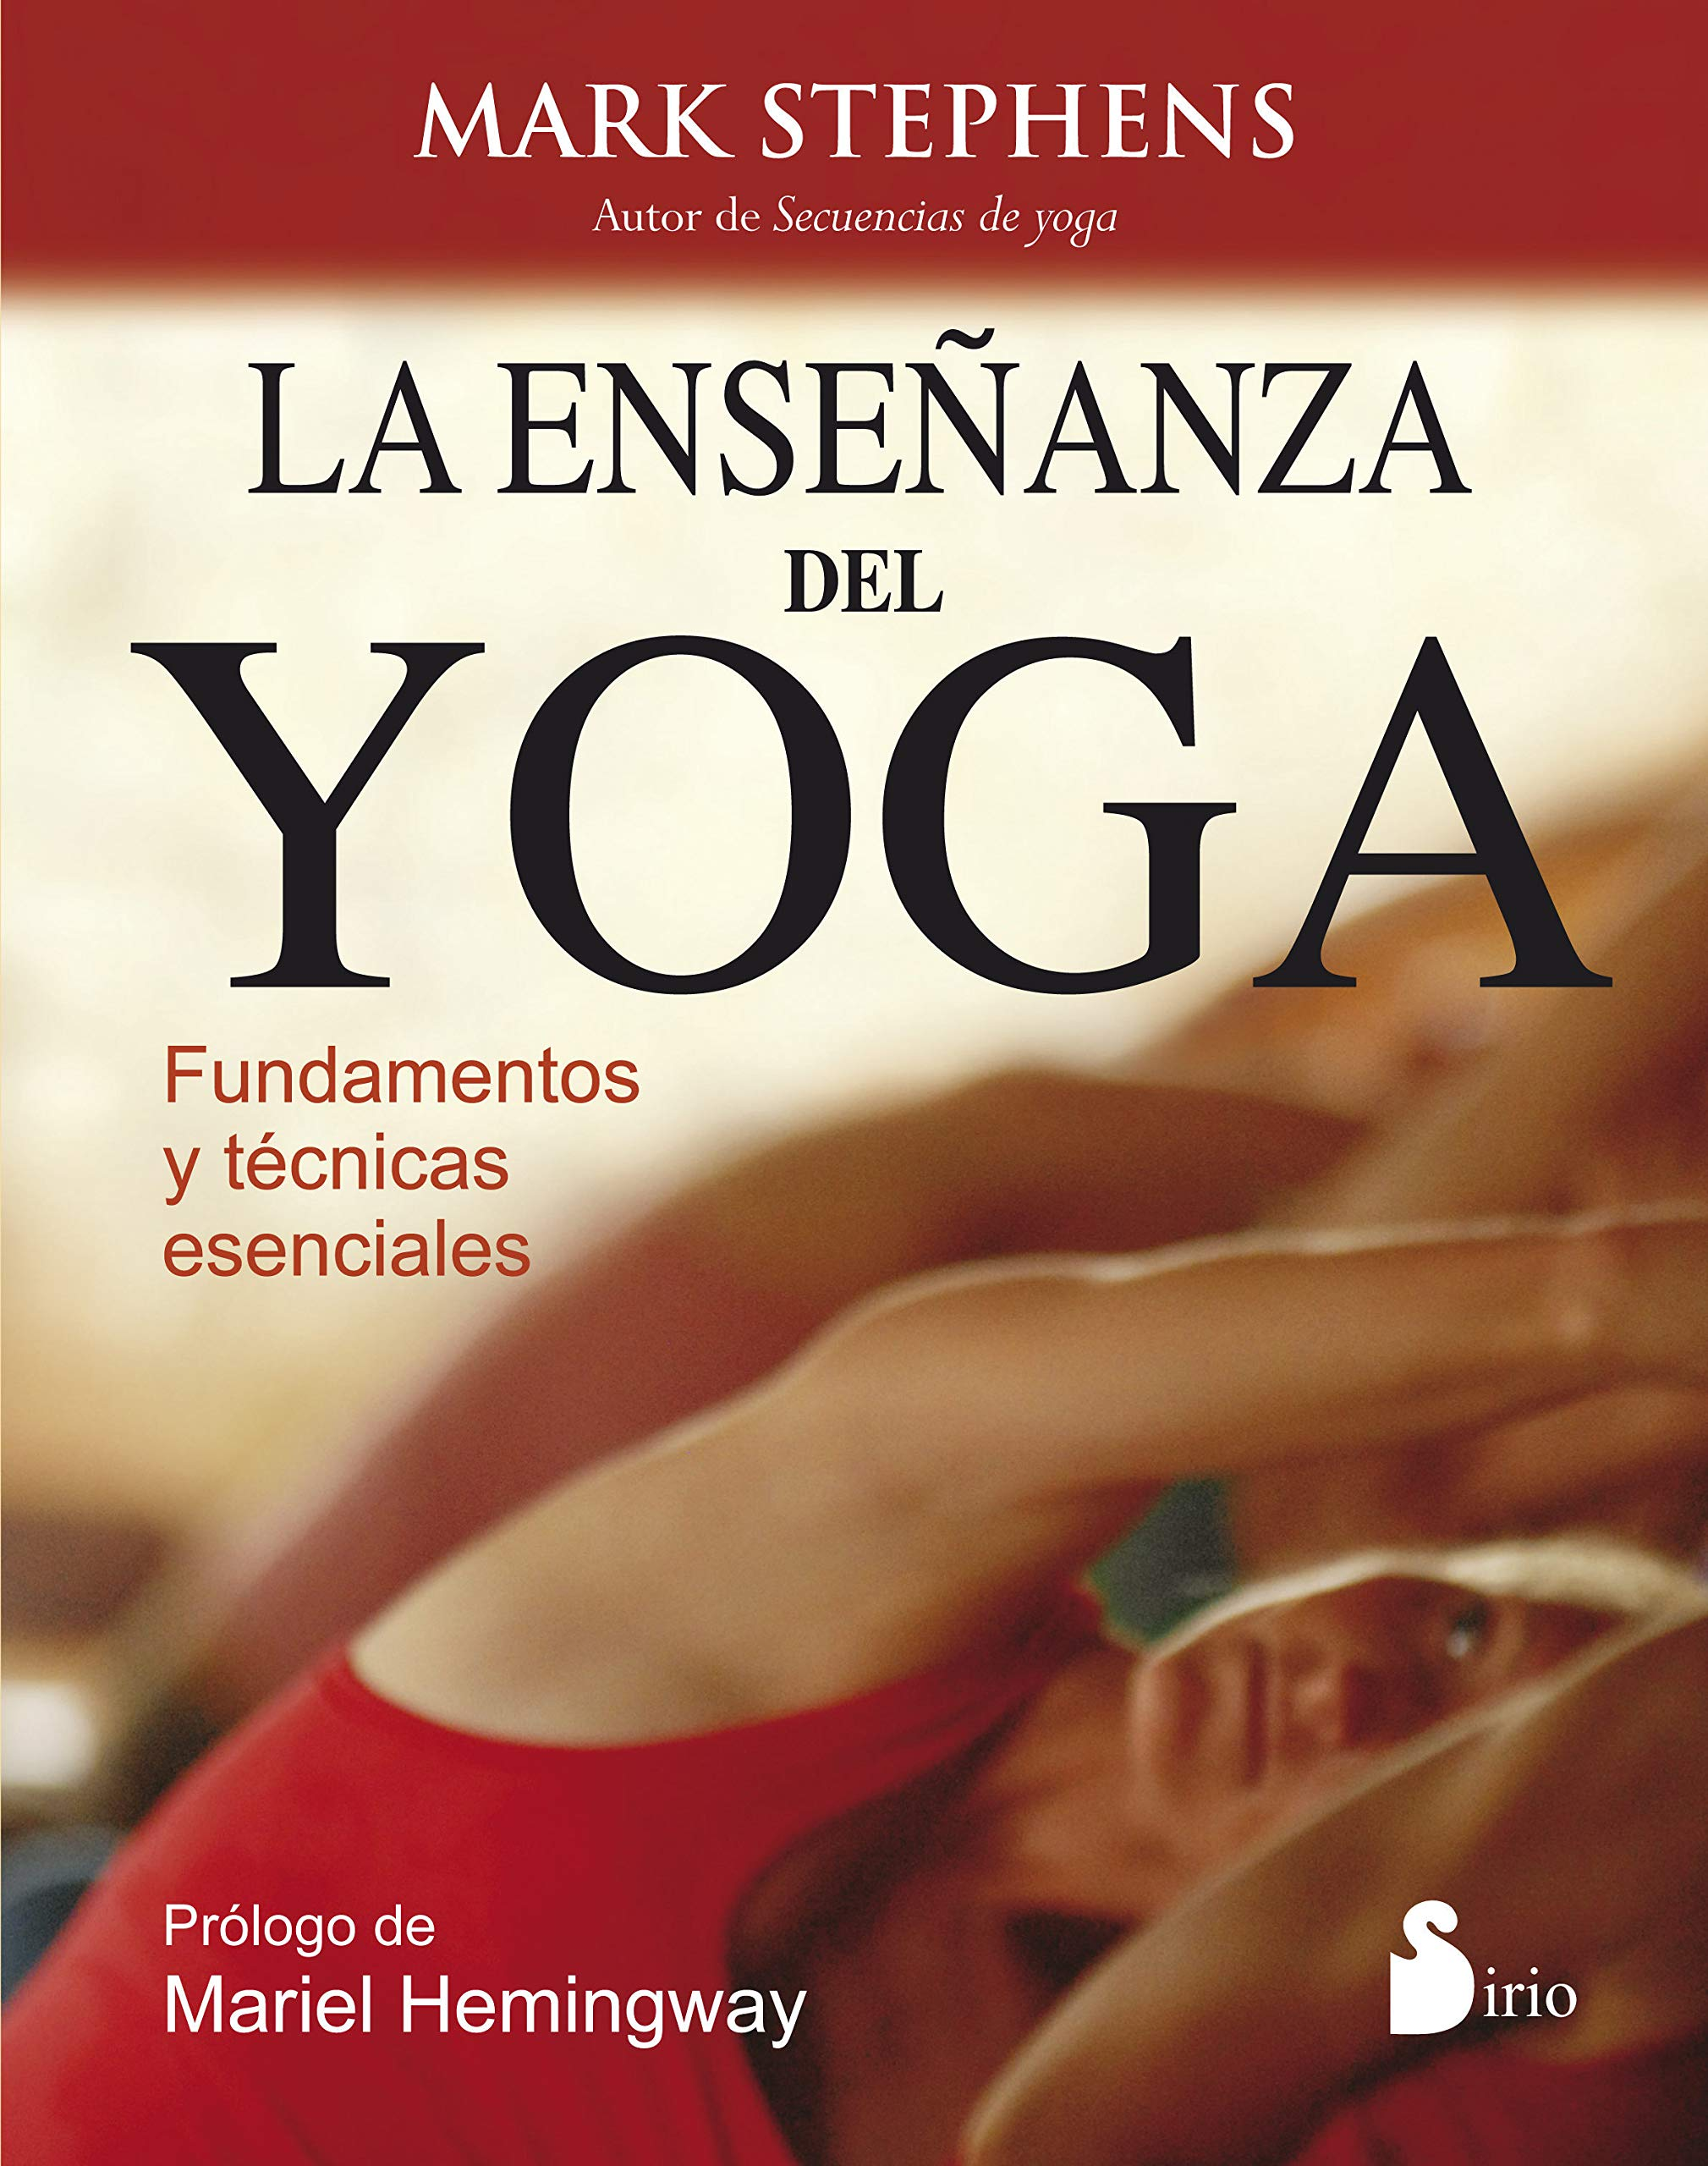 La ensenanza del yoga (Spanish Edition): Mark Stephens ...